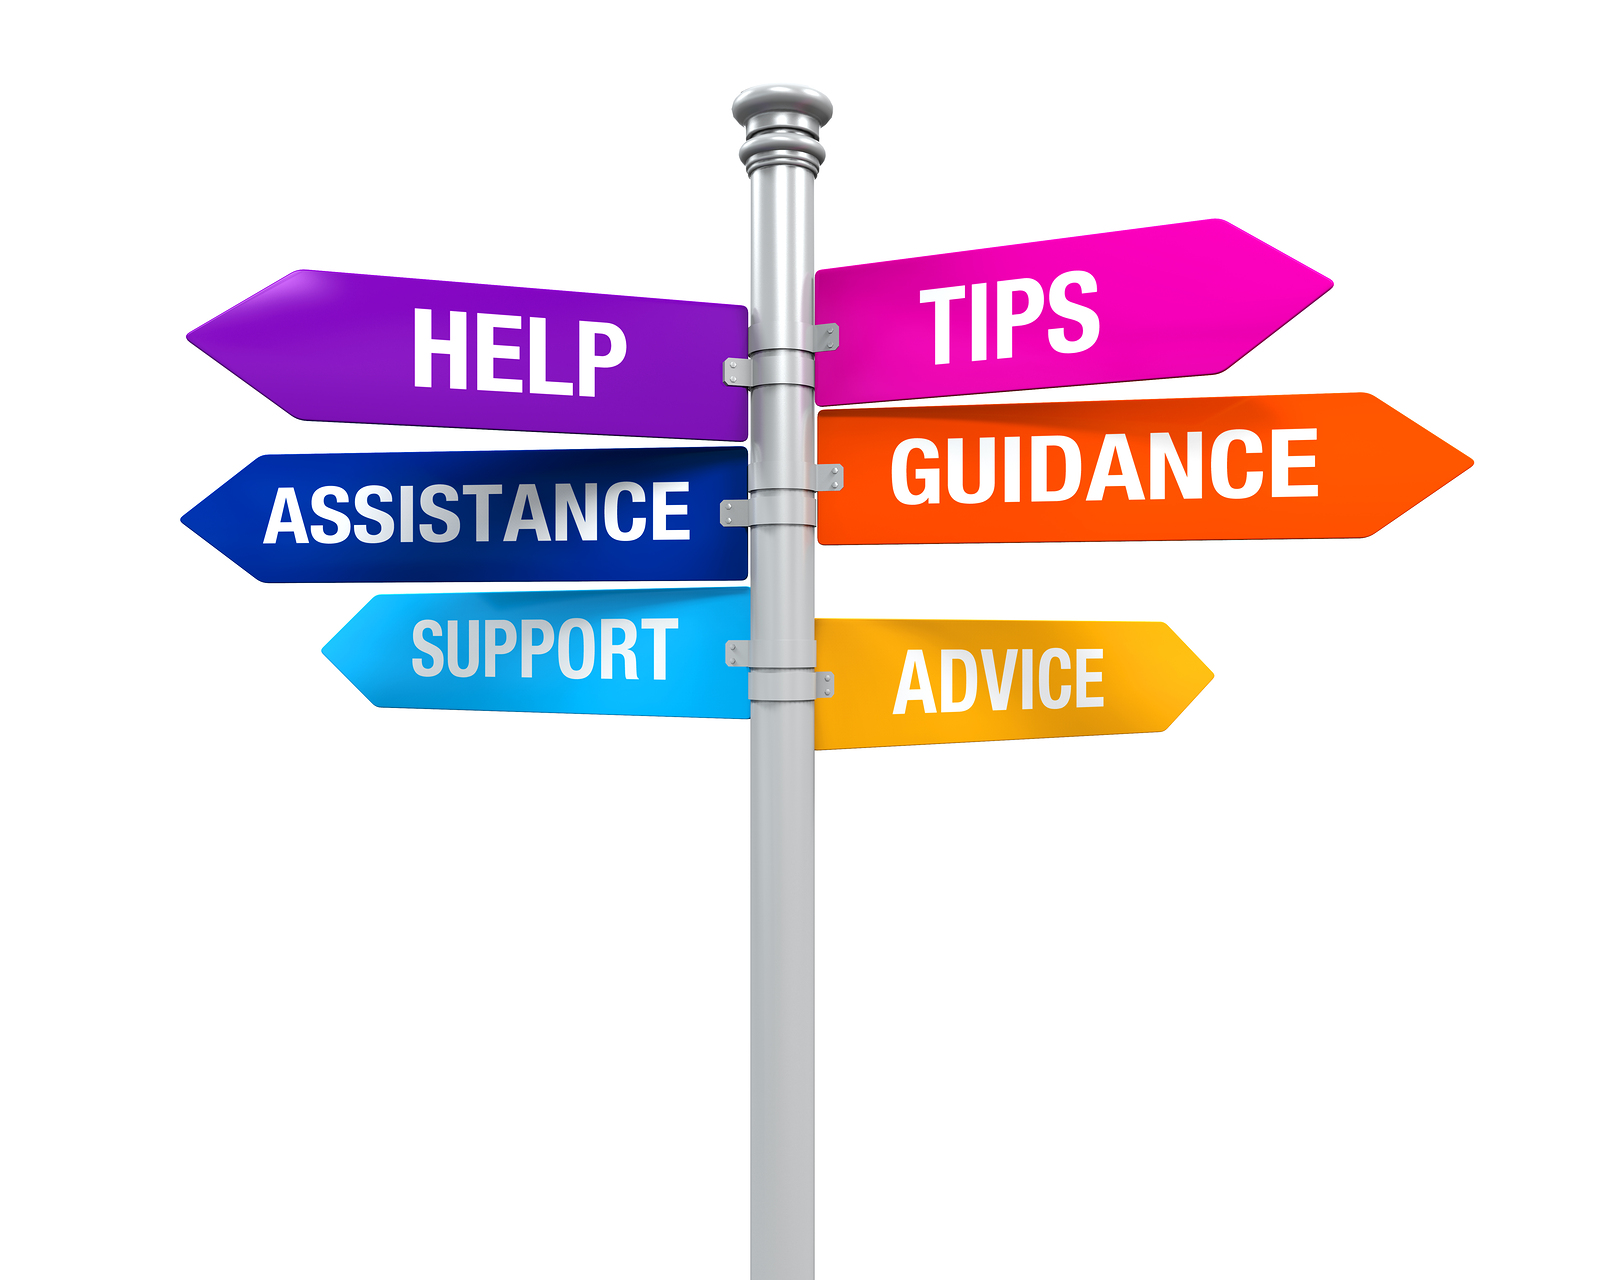 Sign Directions Support Help Tips Advice Guidance Assistance